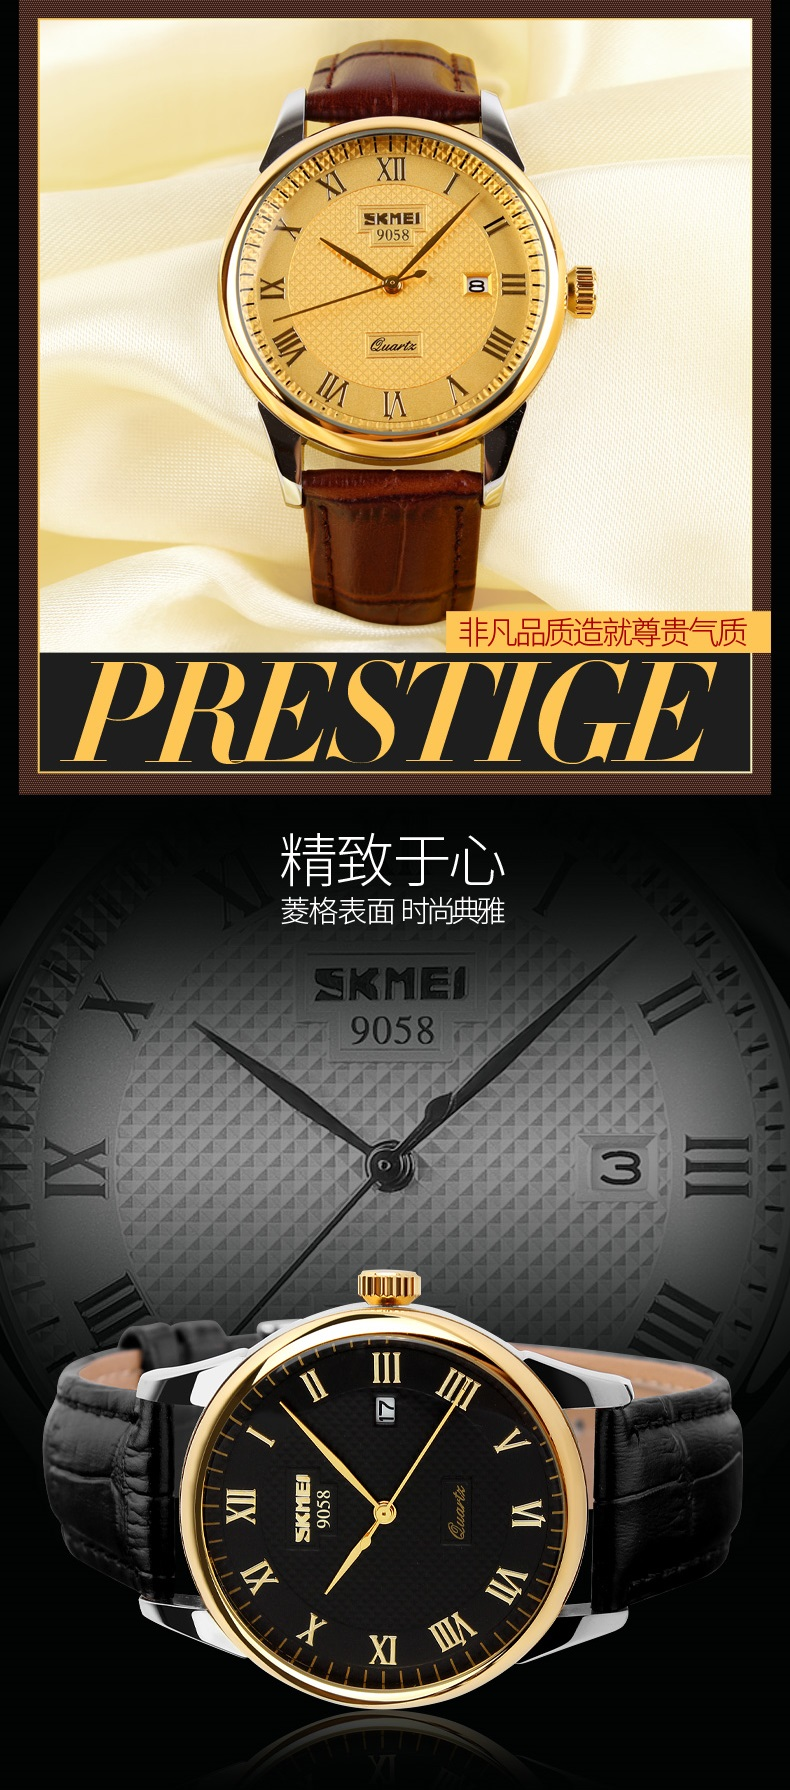 HTB1yJU QVXXXXa5apXXq6xXFXXXt - SKMEI 9058 Classic Watch for Men